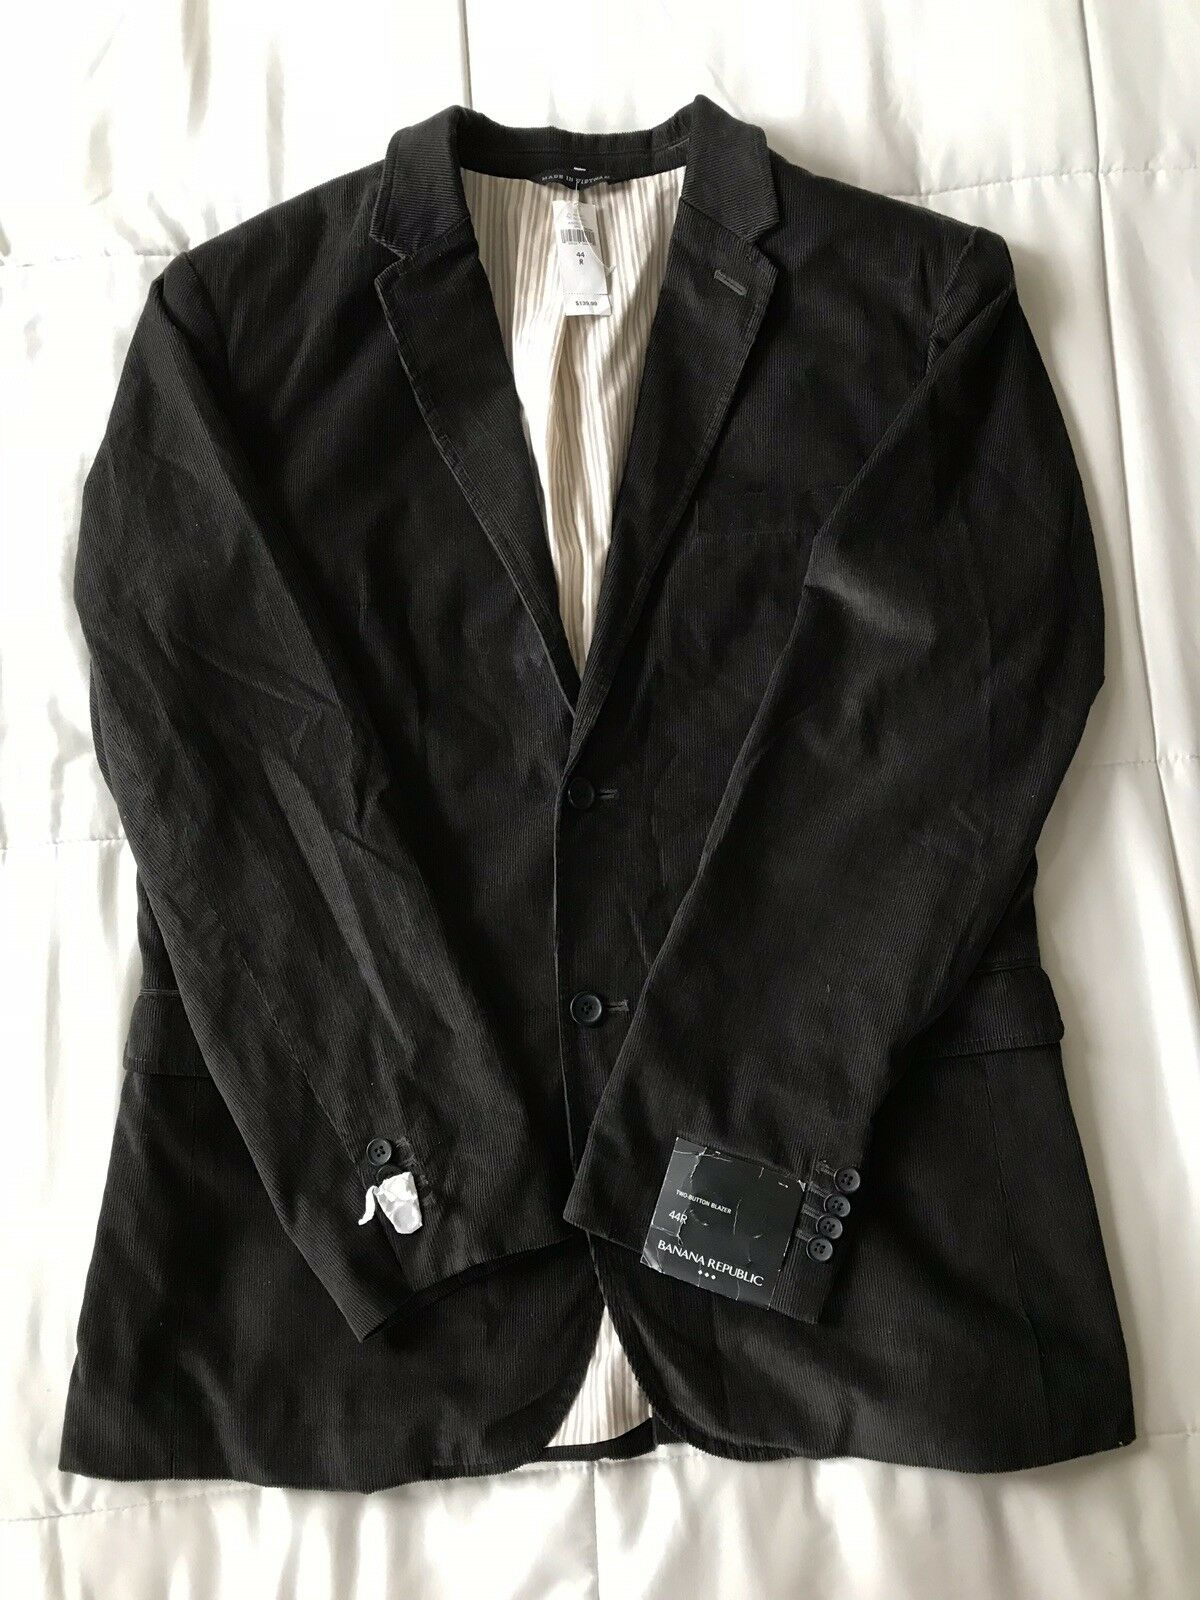 Banana Republic Braun Two-Button Corduroy Sports Coat Größe 44 MSRP 139.99